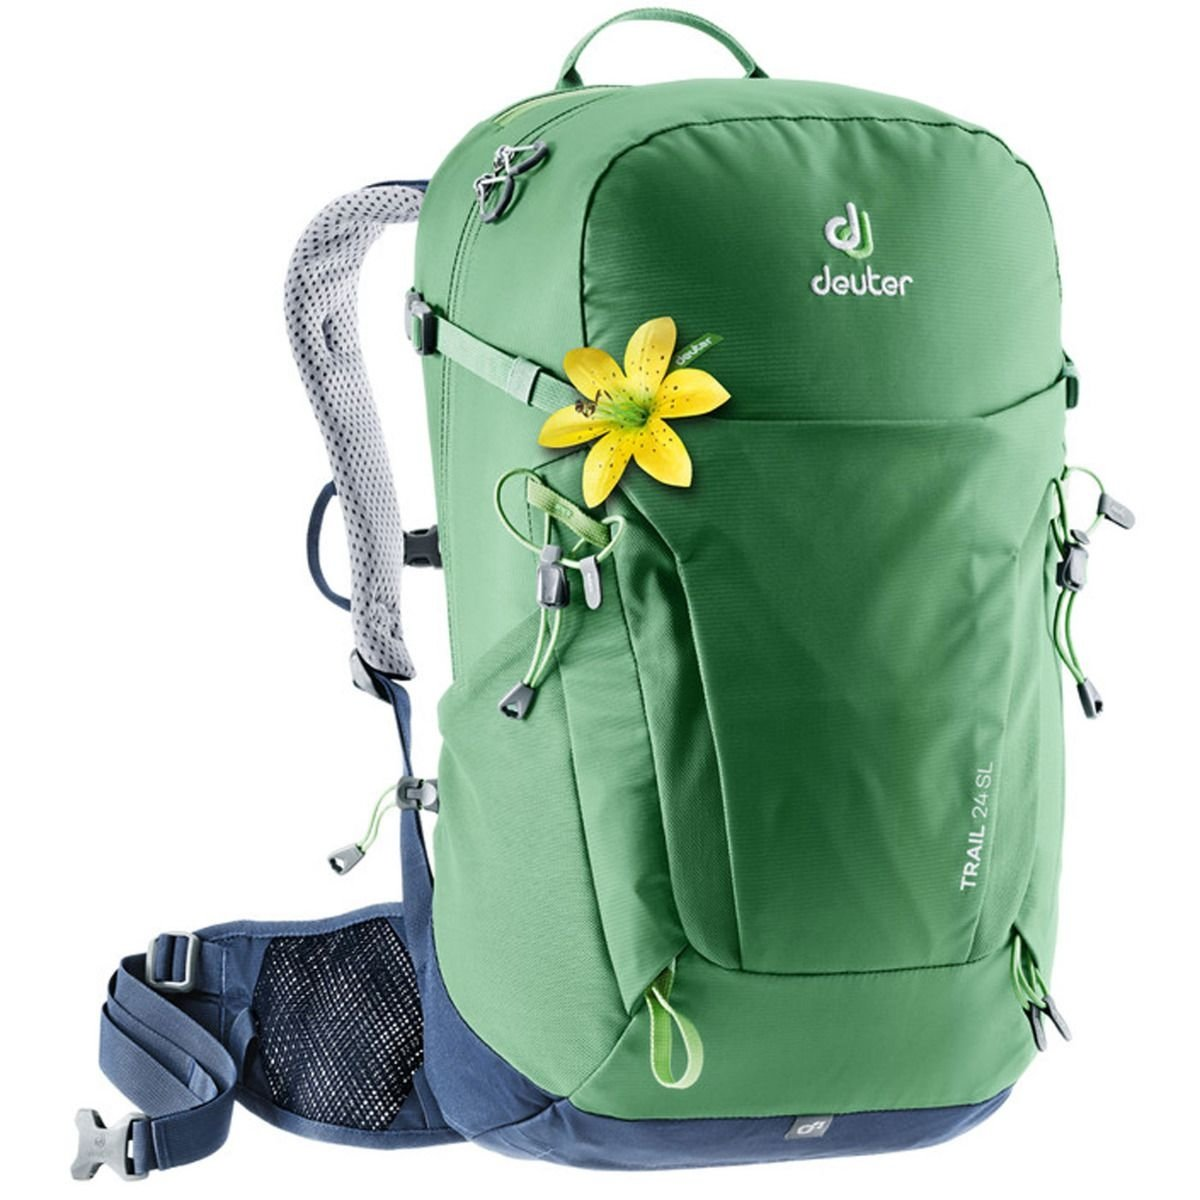 Рюкзак Deuter Trail 24 SL цвет 2326 leaf-navy 3440219 2326